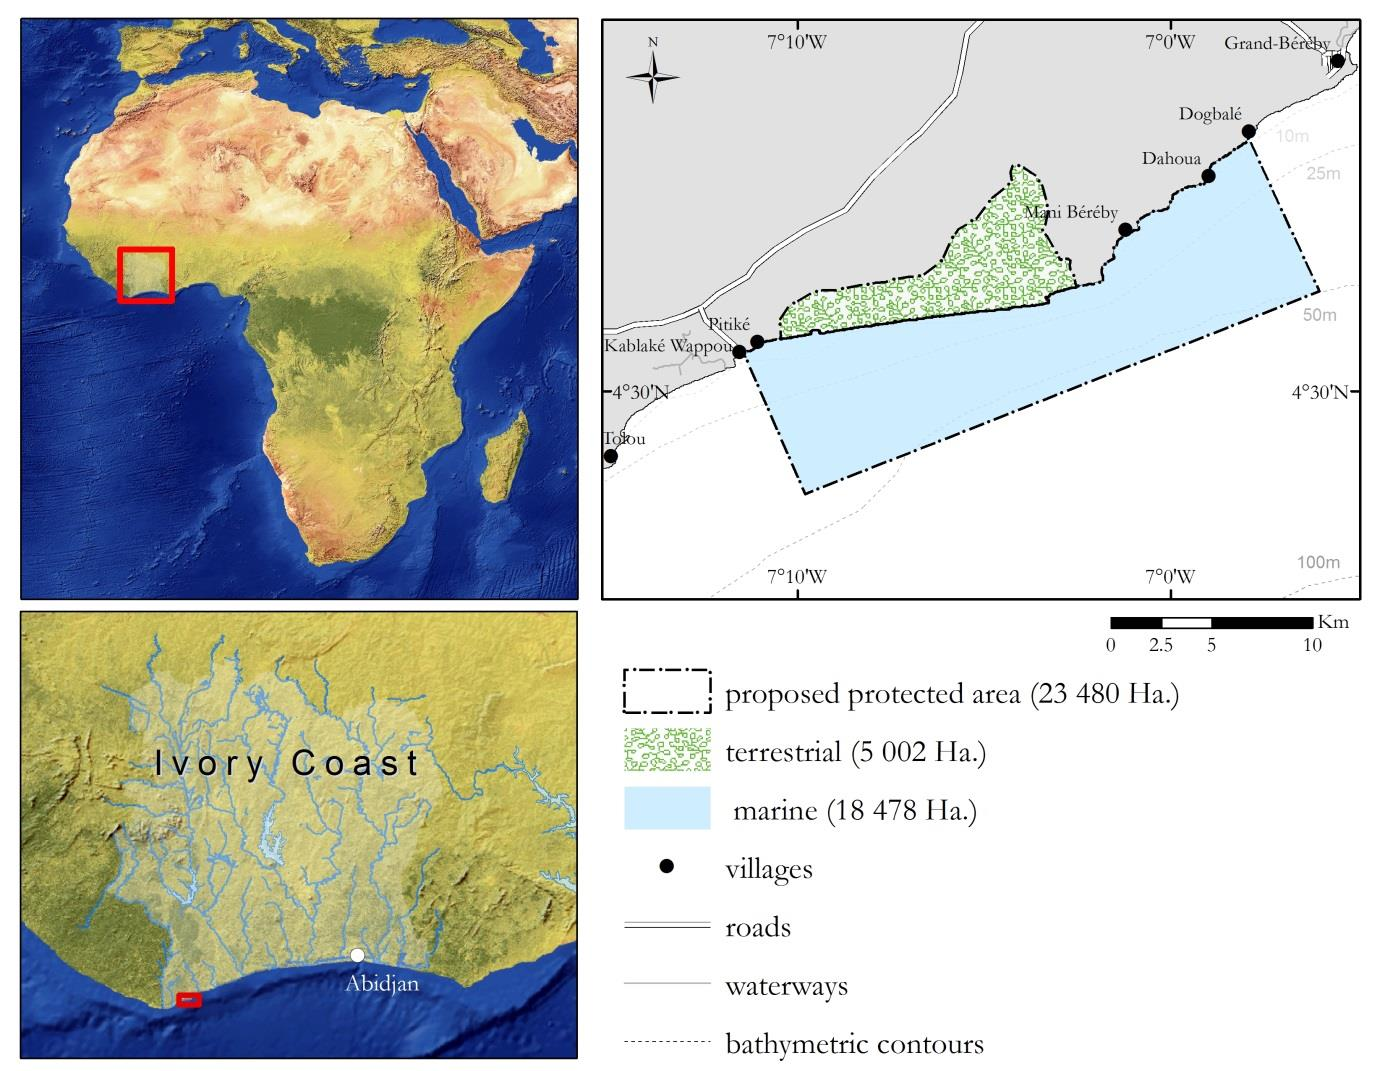 Marine Protected Area west of Grand Bereby, Cote d'Ivoire